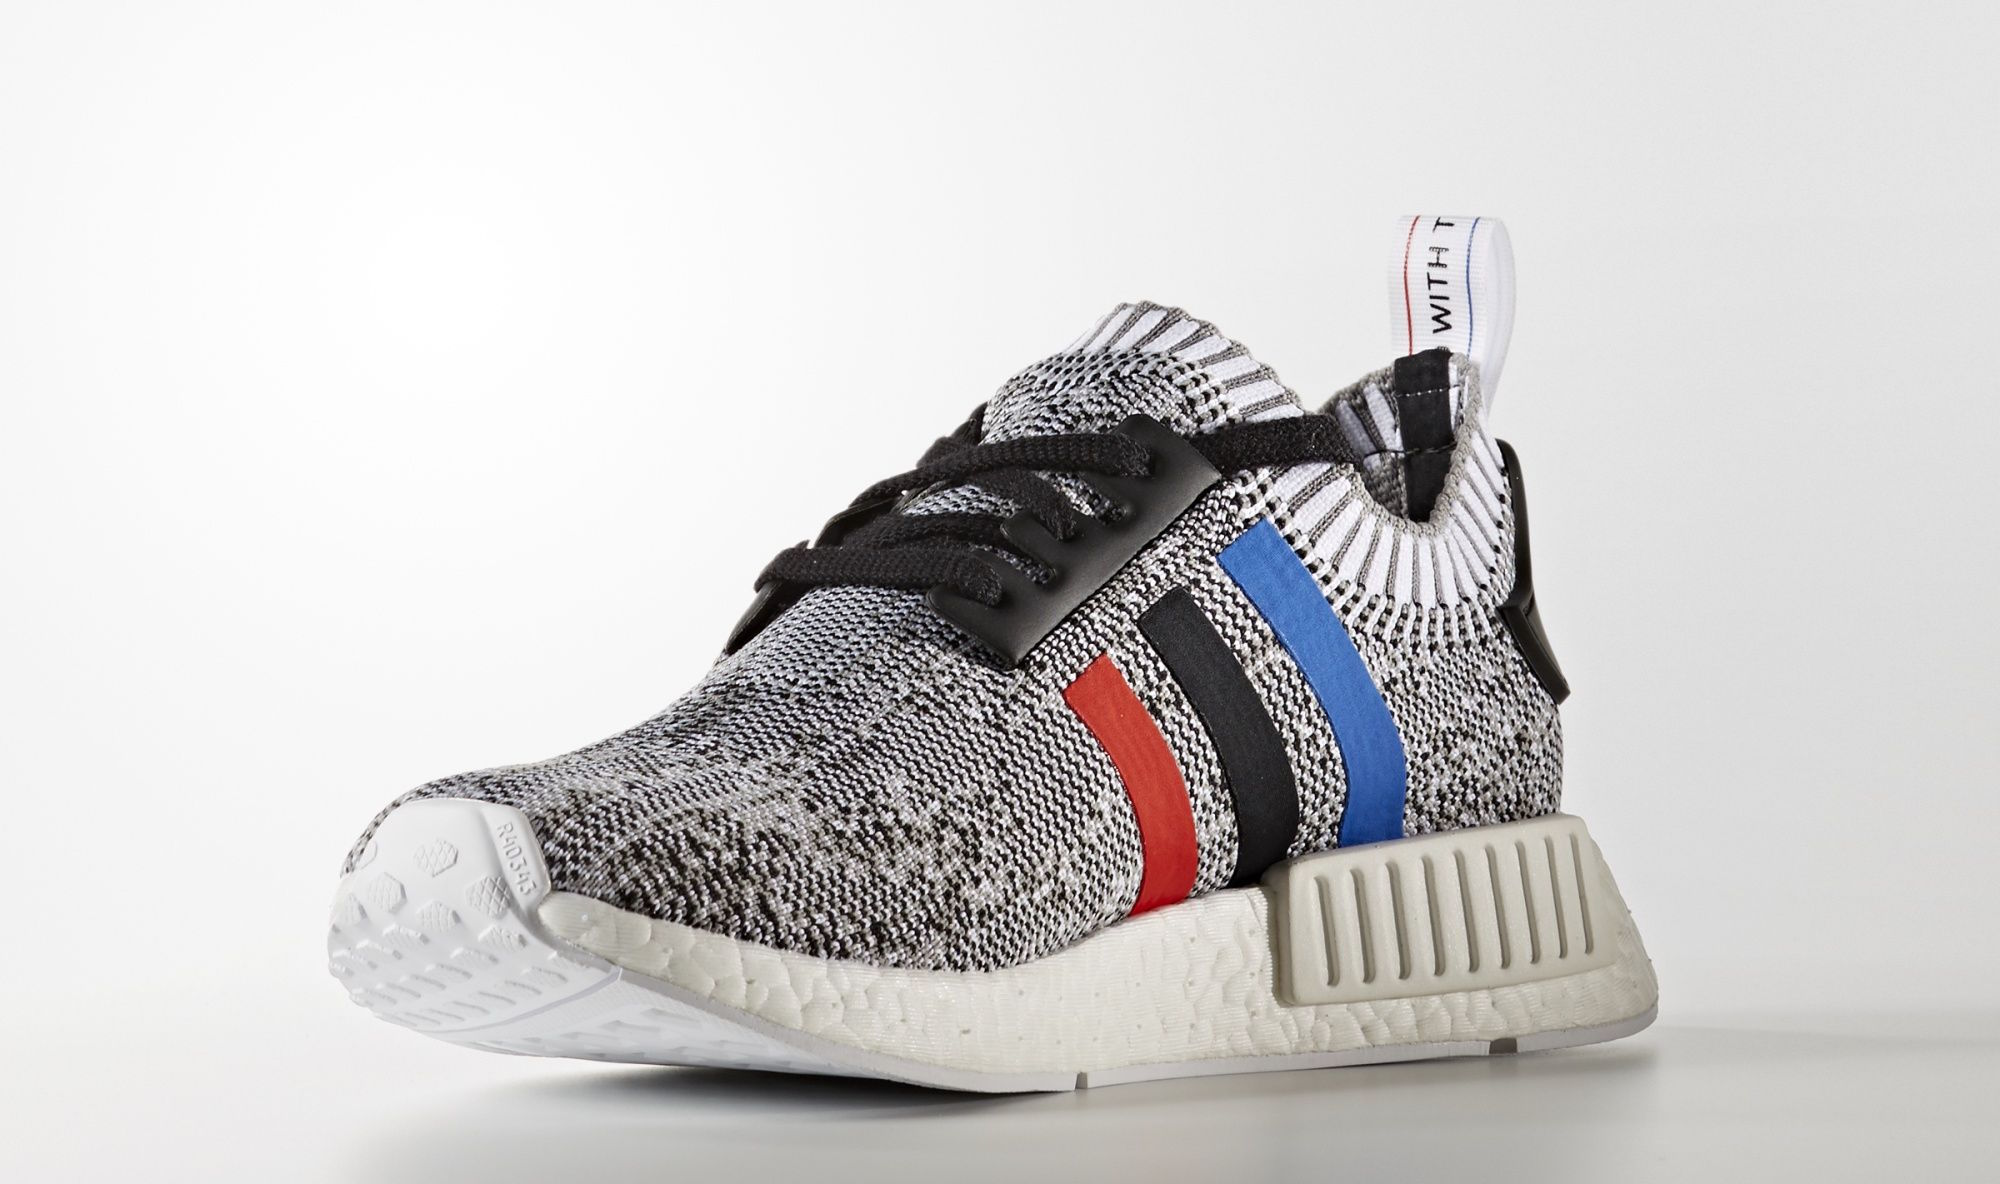 adidas NMD R1 Primeknit Fall Winter 2016 Colorways hot sale